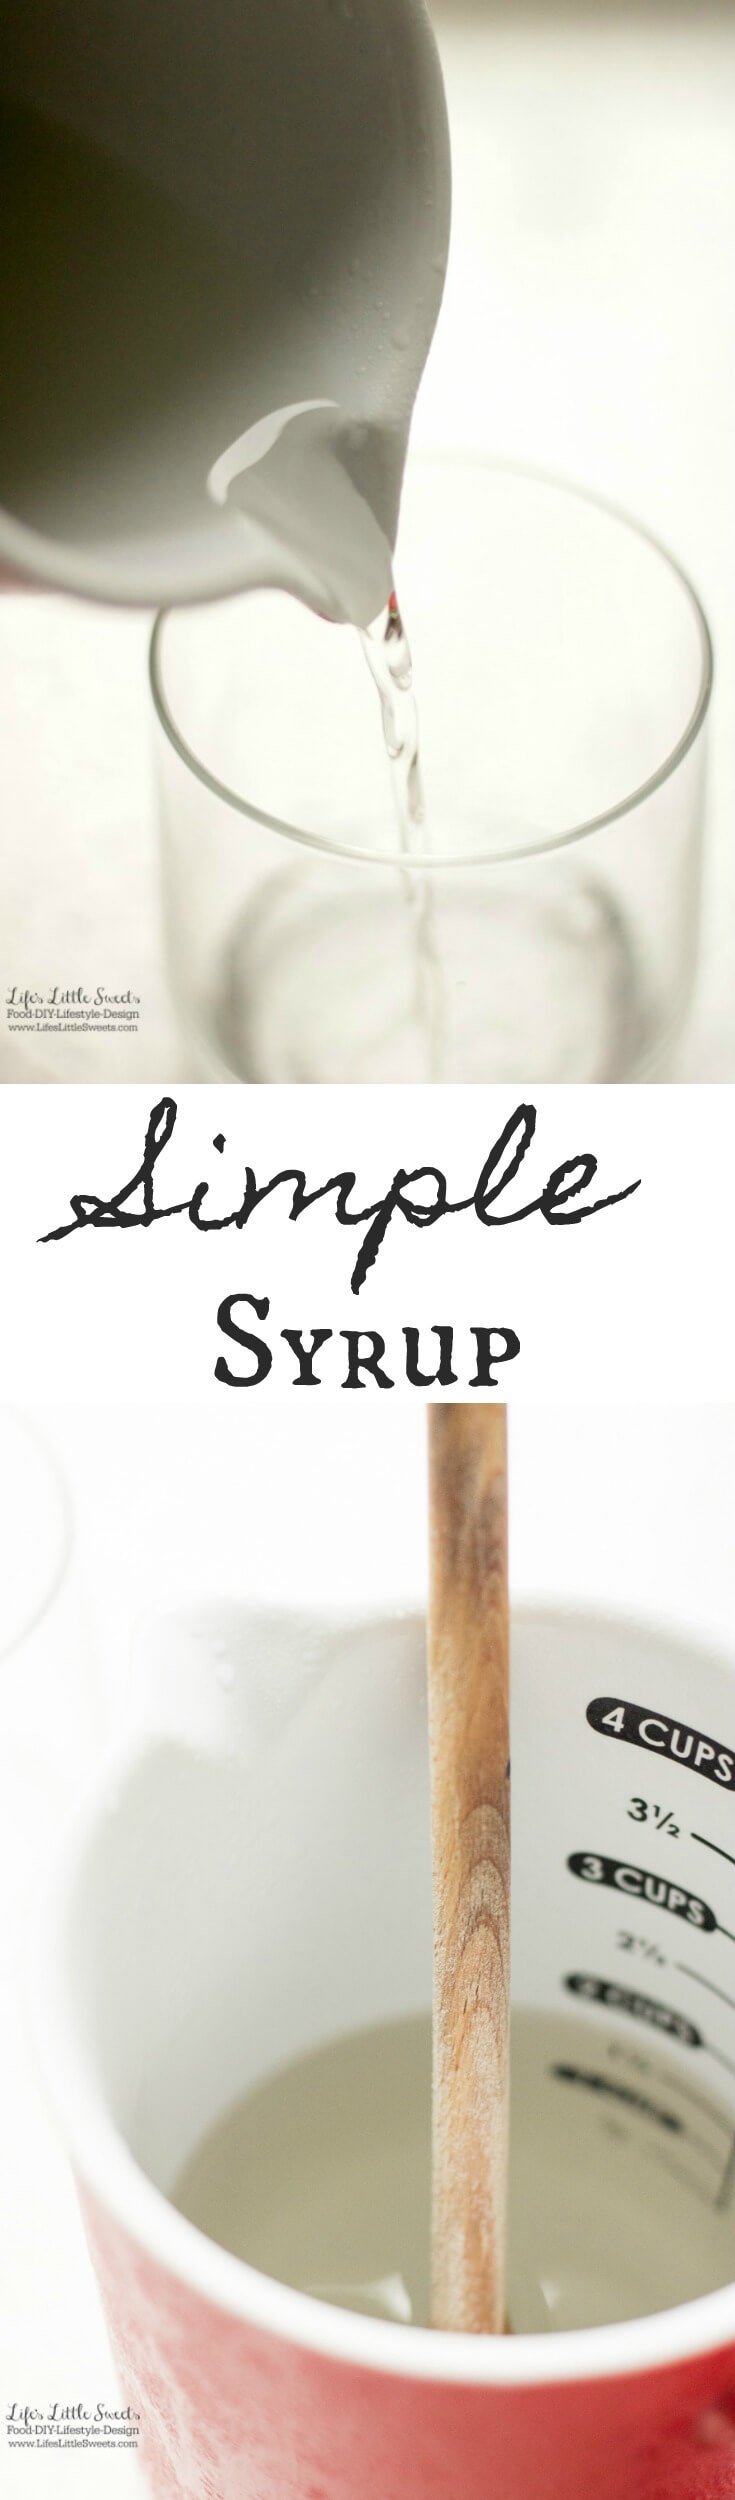 This basic Simple Syrup recipe is a basic ingredient for many drink recipes. It only takes minutes to prepare with 2 ingredients! www.lifeslittlesweets.com